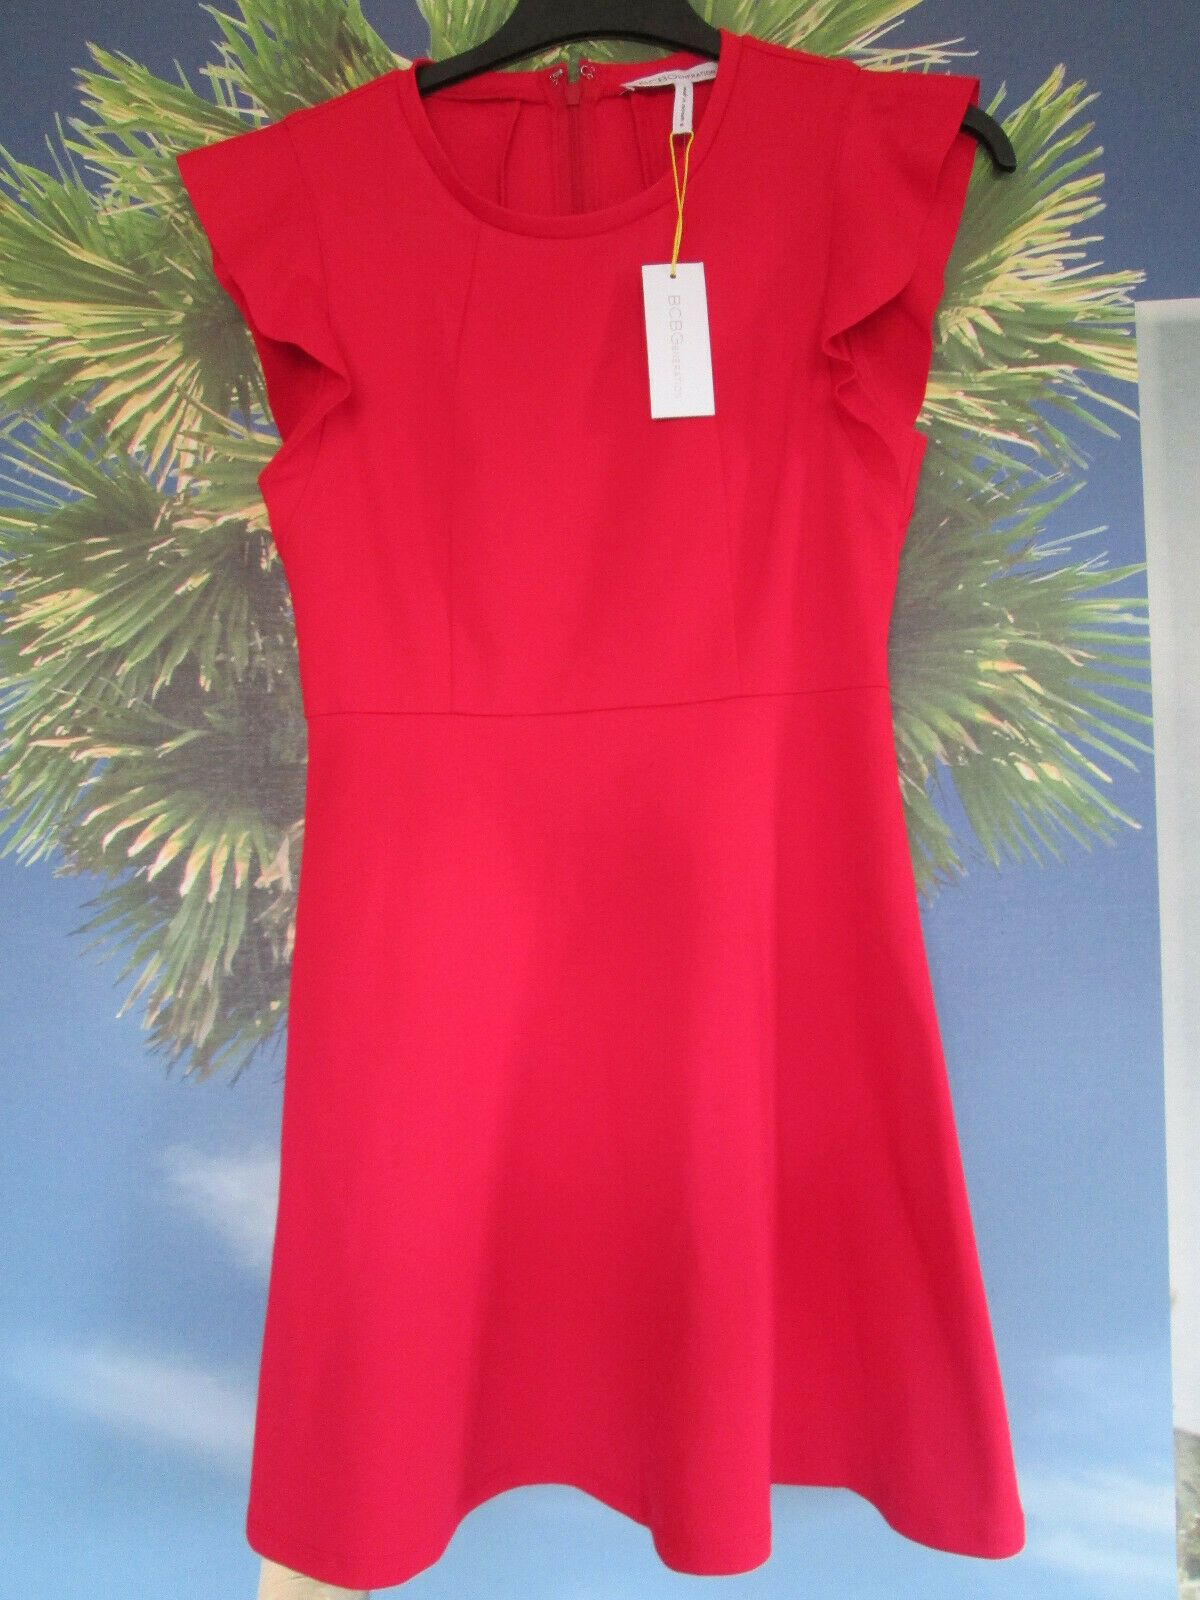 Pin on Rotes Kleid